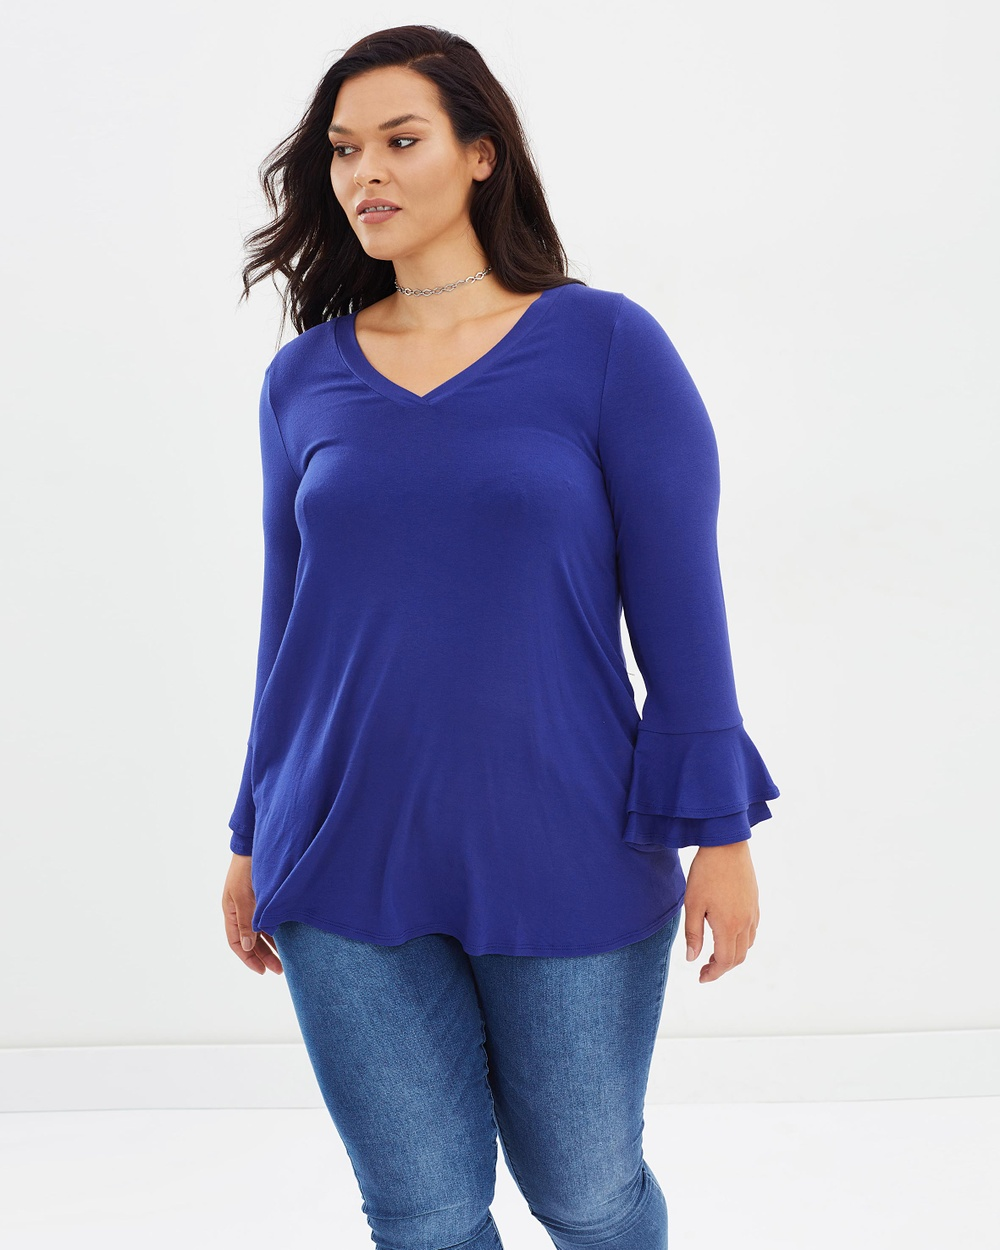 EVANS Tunic Top Tops Blue Tunic Top